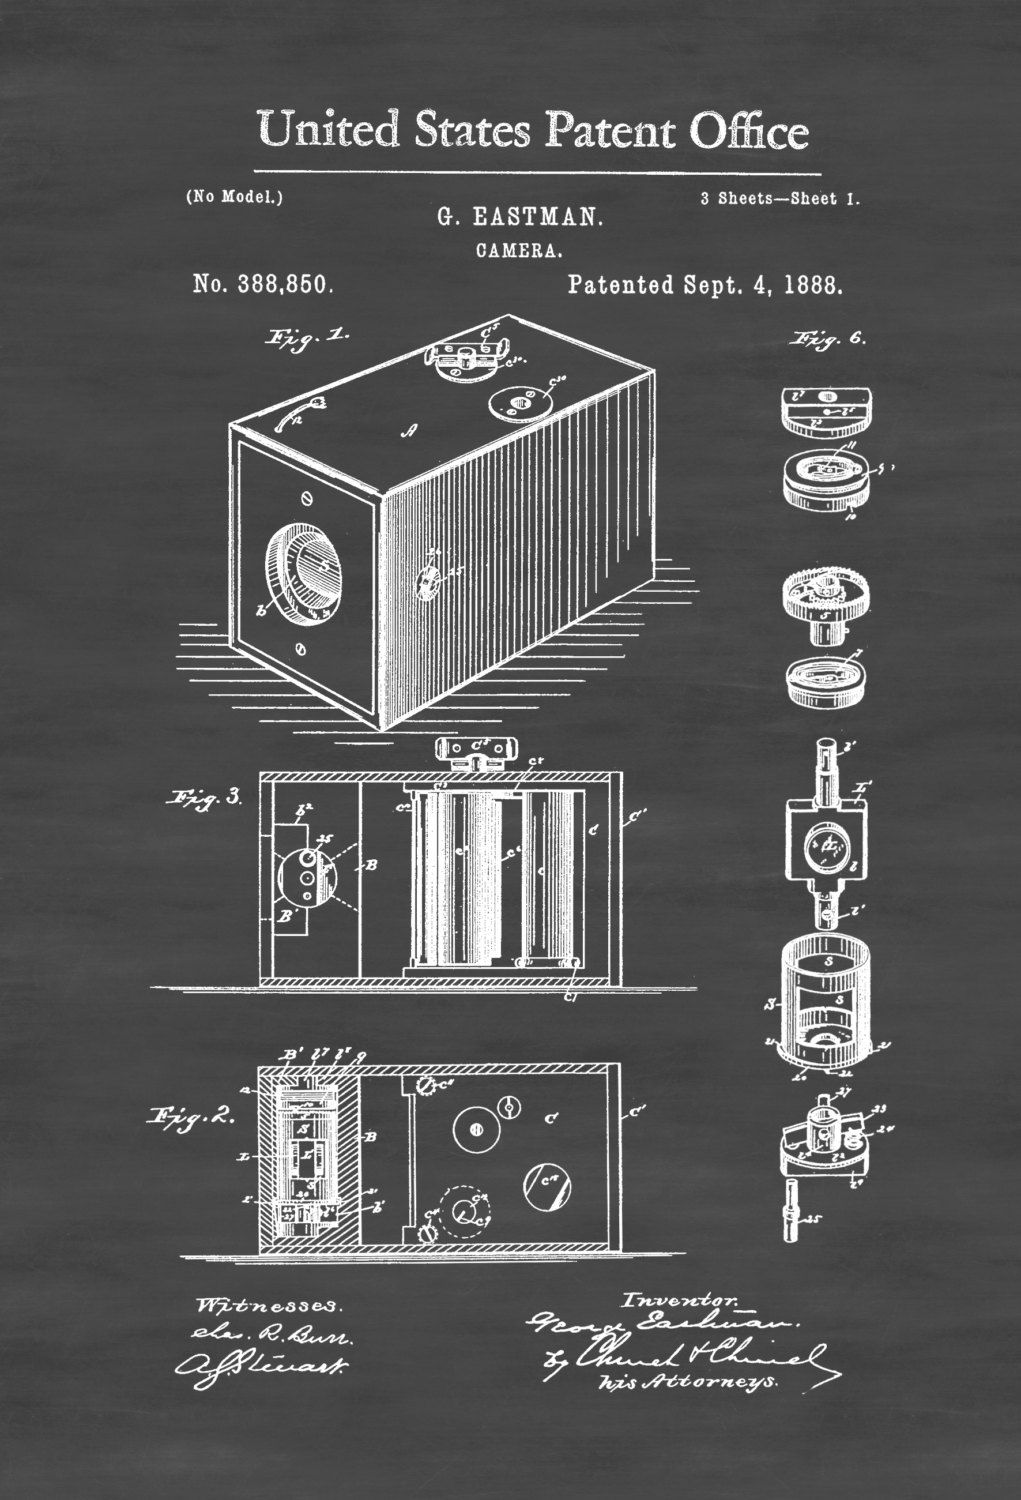 Eastman kodak camera patent patent print wall decor photography a patent print poster of the first kodak photo camera invented by george eastman the patent was issued by the united states patent office on september 4 malvernweather Images